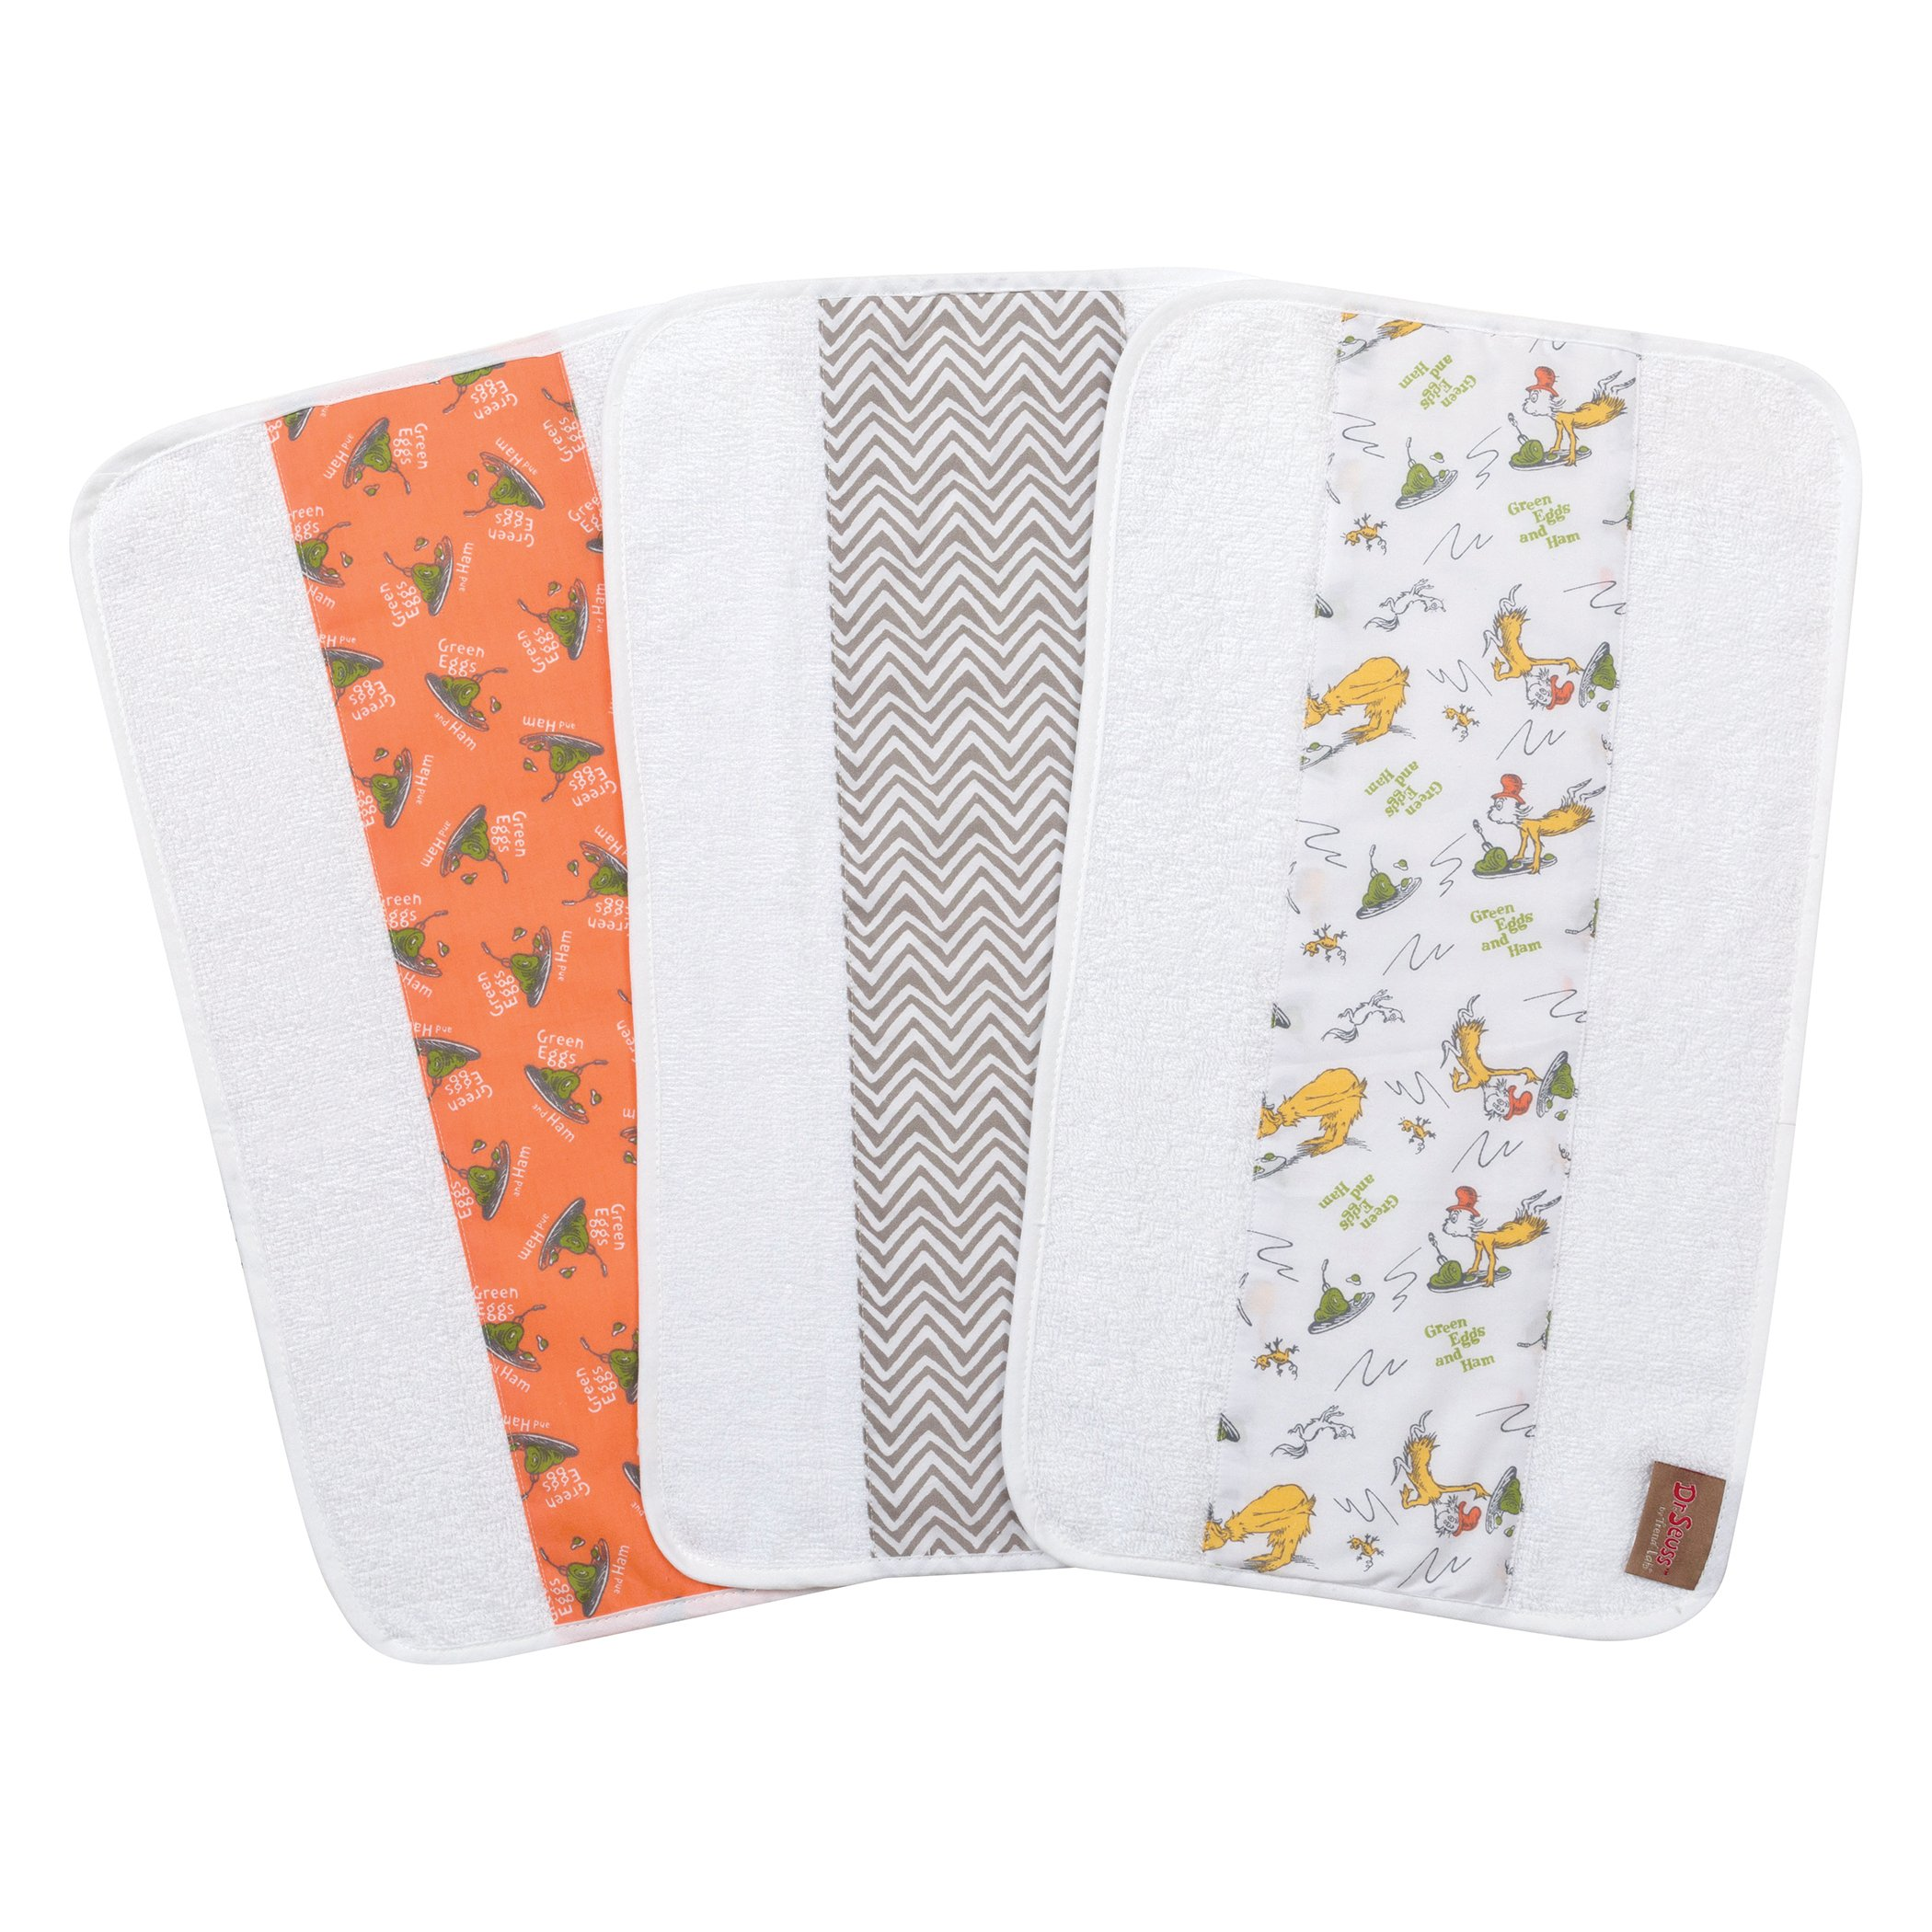 Trend Lab Dr. Seuss by Green Eggs and Ham 3 Pack Jumbo Burp Cloth Set, Orange/Green Yellow/Gray/White by Trend Lab